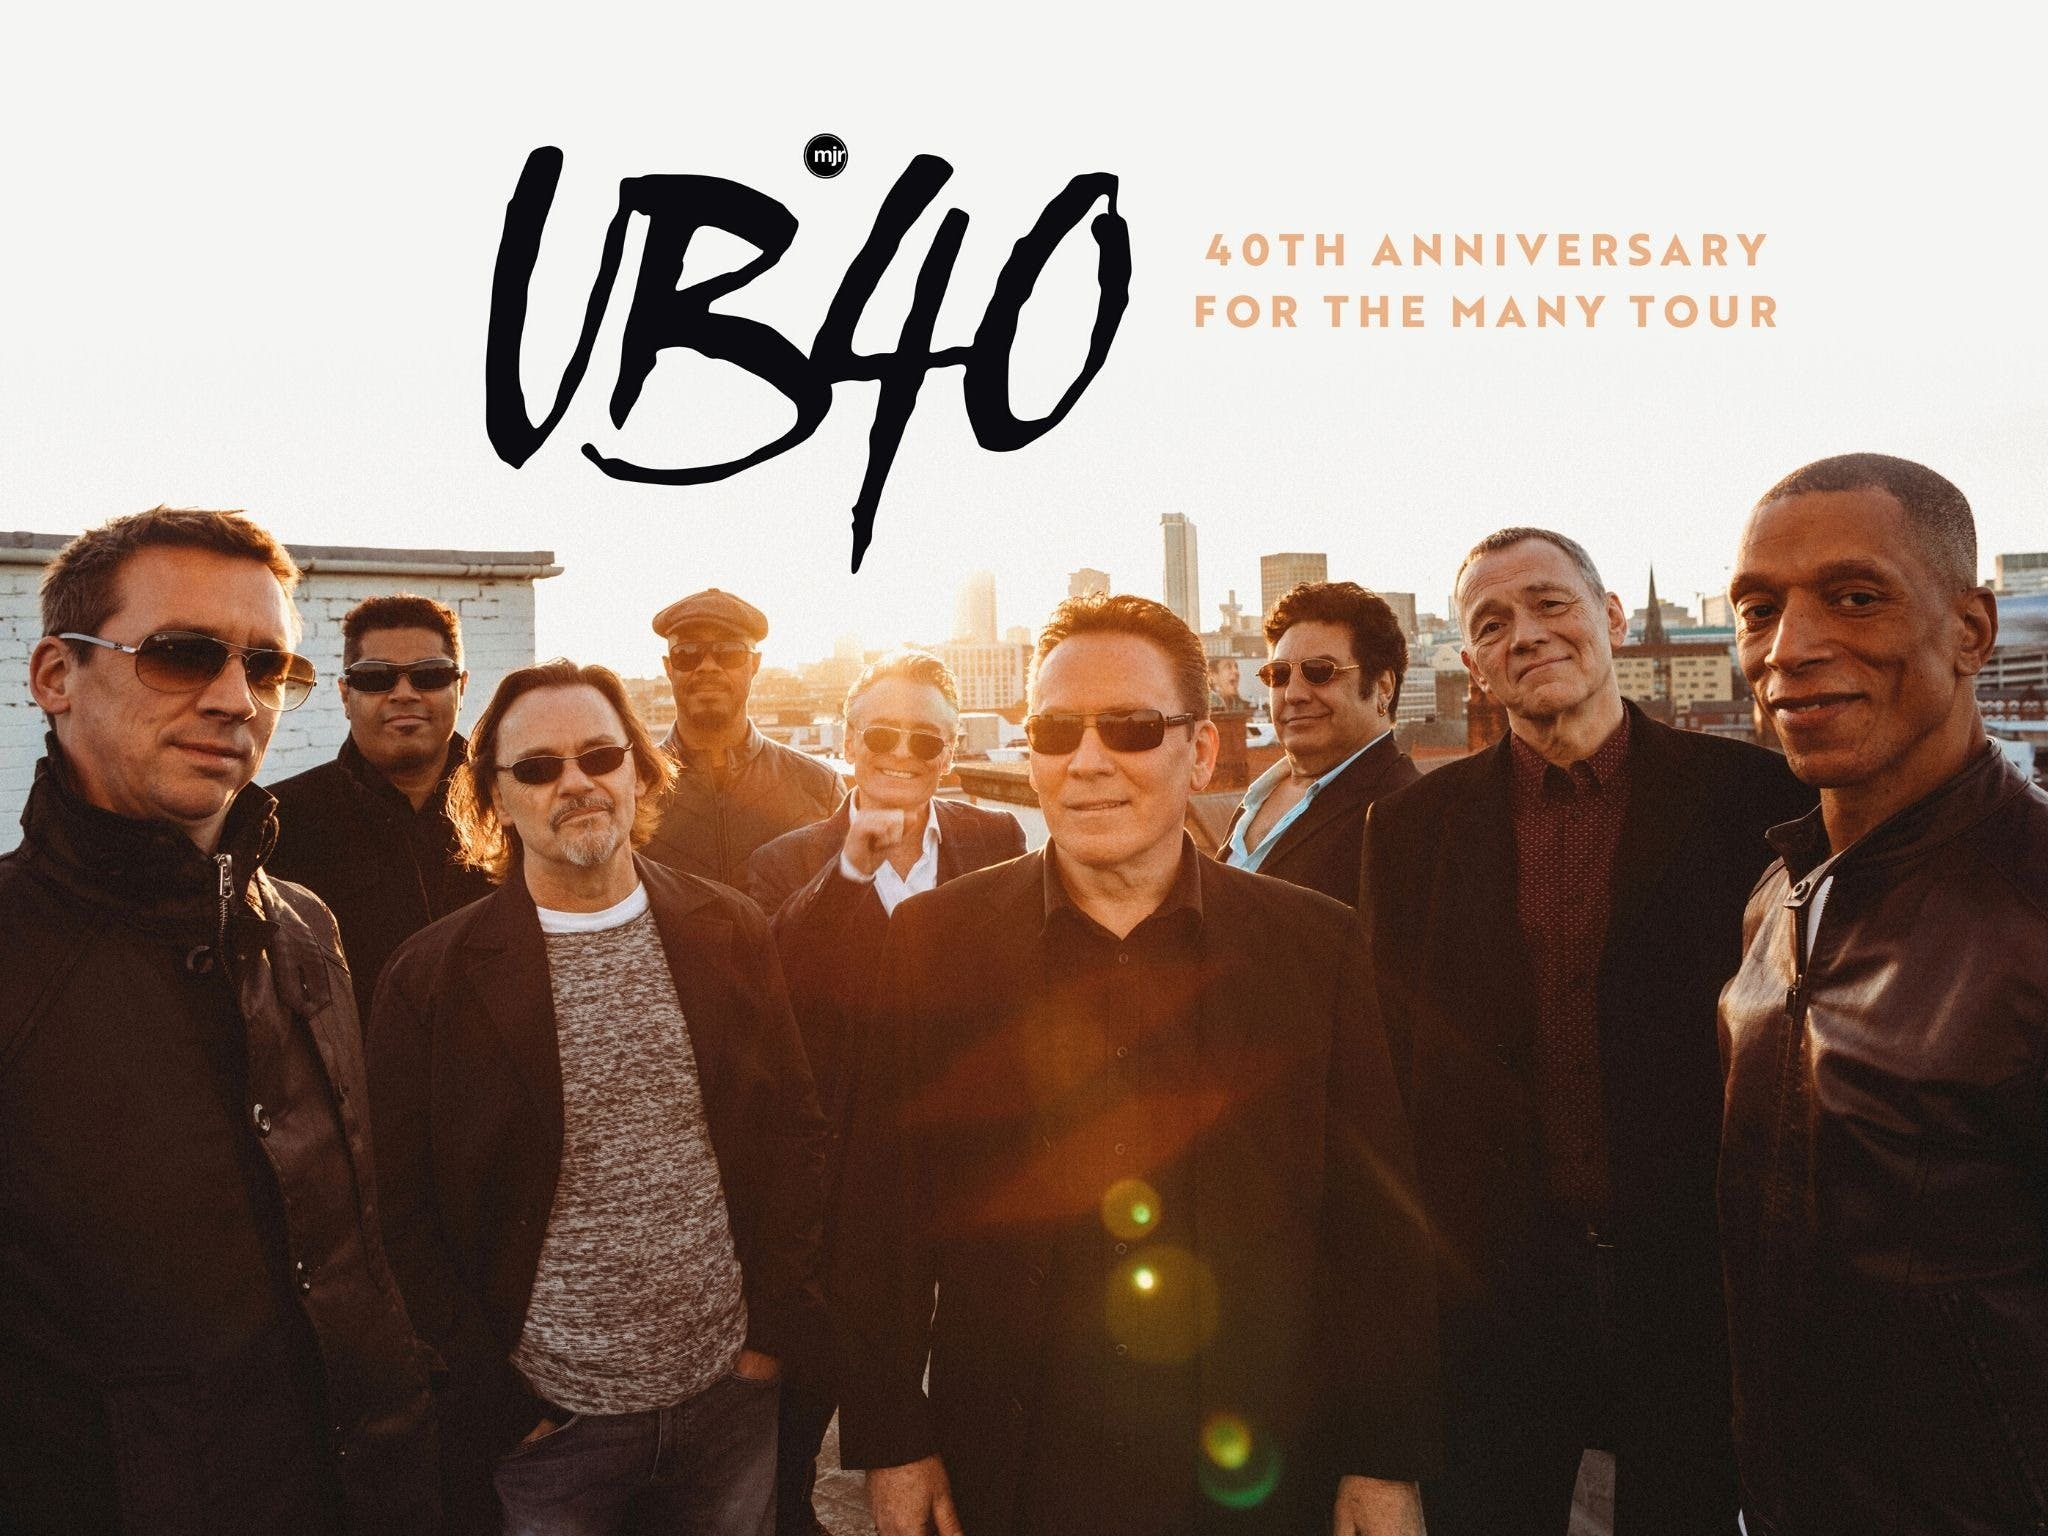 UB40 40th Anniversary Tour - Broome Tourism